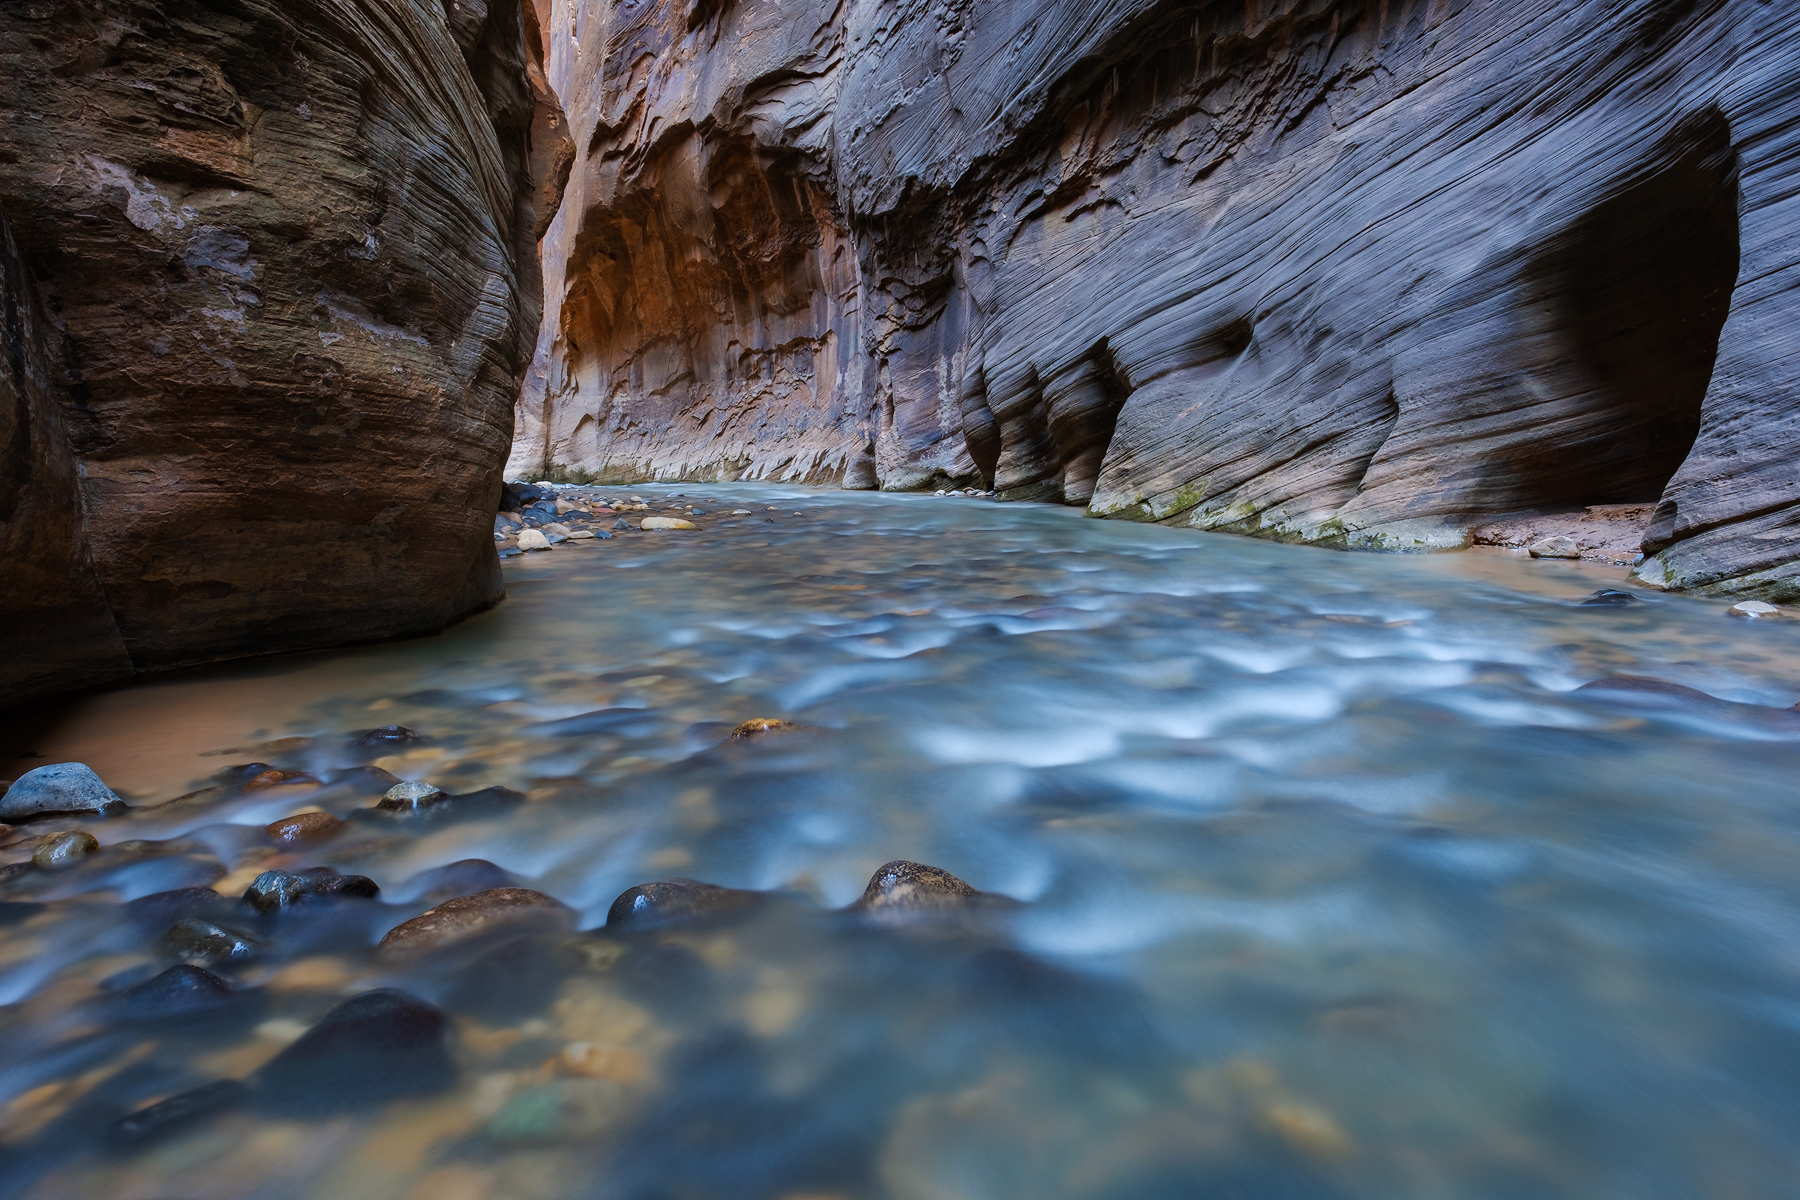 In the Slot • The Narrows, Zion National Park, Utah. Fuji X-T2 and a Fujinon XF14mm f2.8 R. Image exposed at ISO 200 at f11 for 10 seconds.